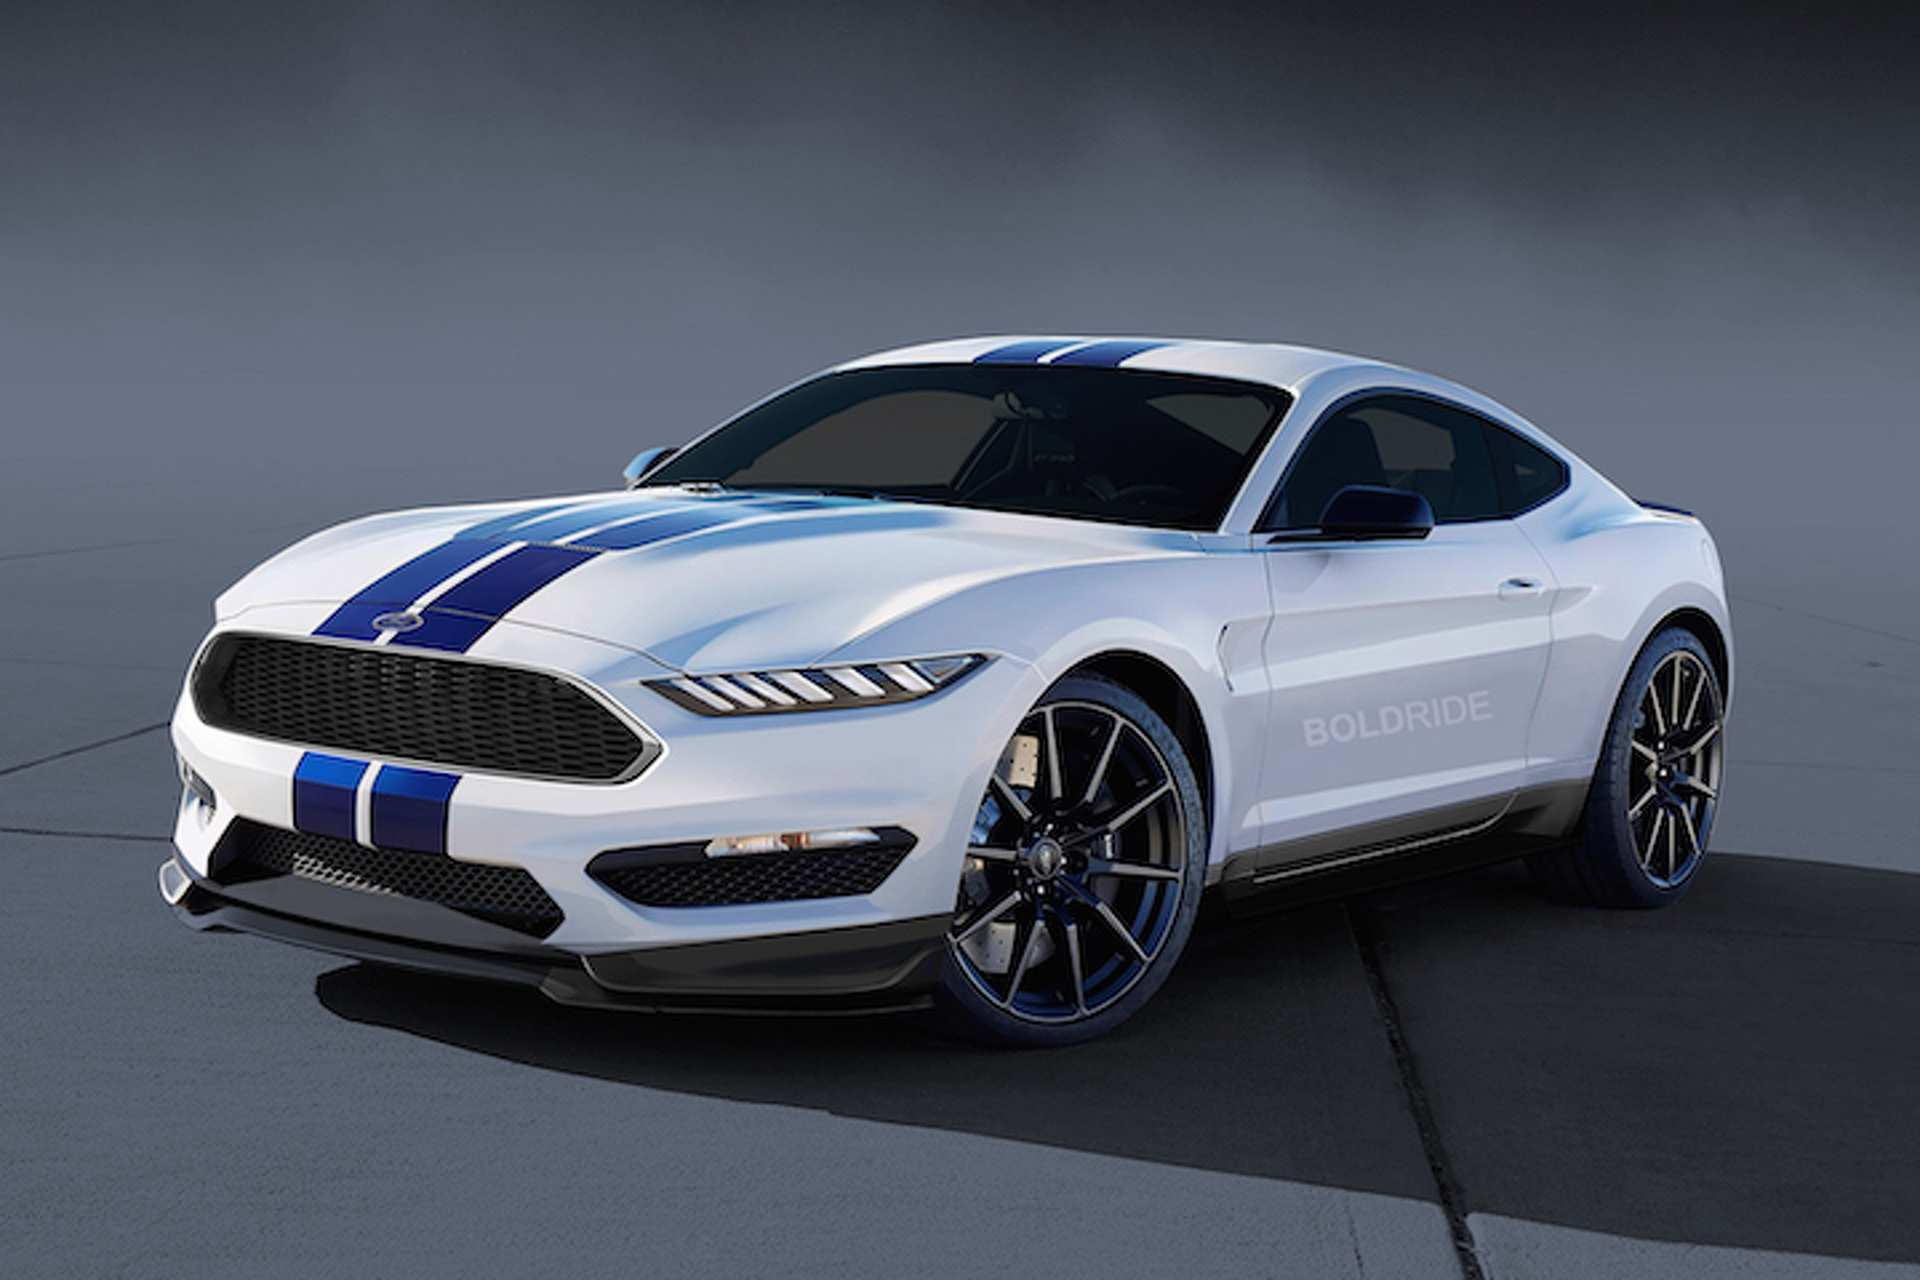 99 The 2020 Mustang Images for 2020 Mustang